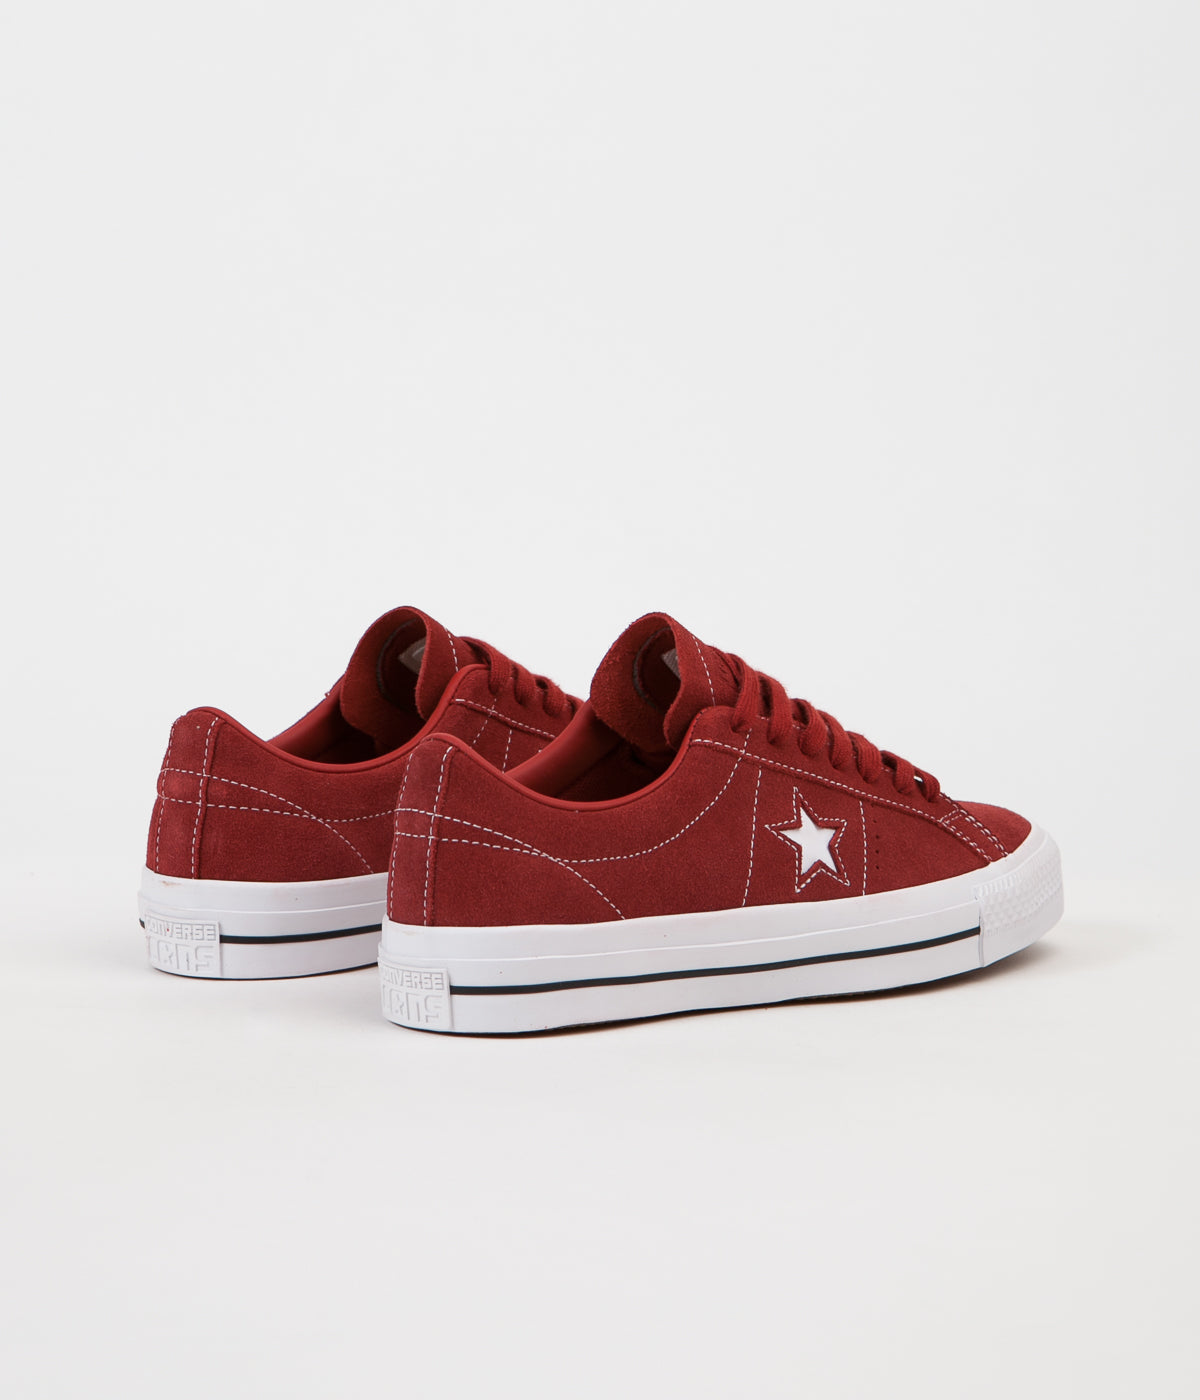 ... Converse One Star Pro Ox Shoes - Terra Red / Terra Red ...